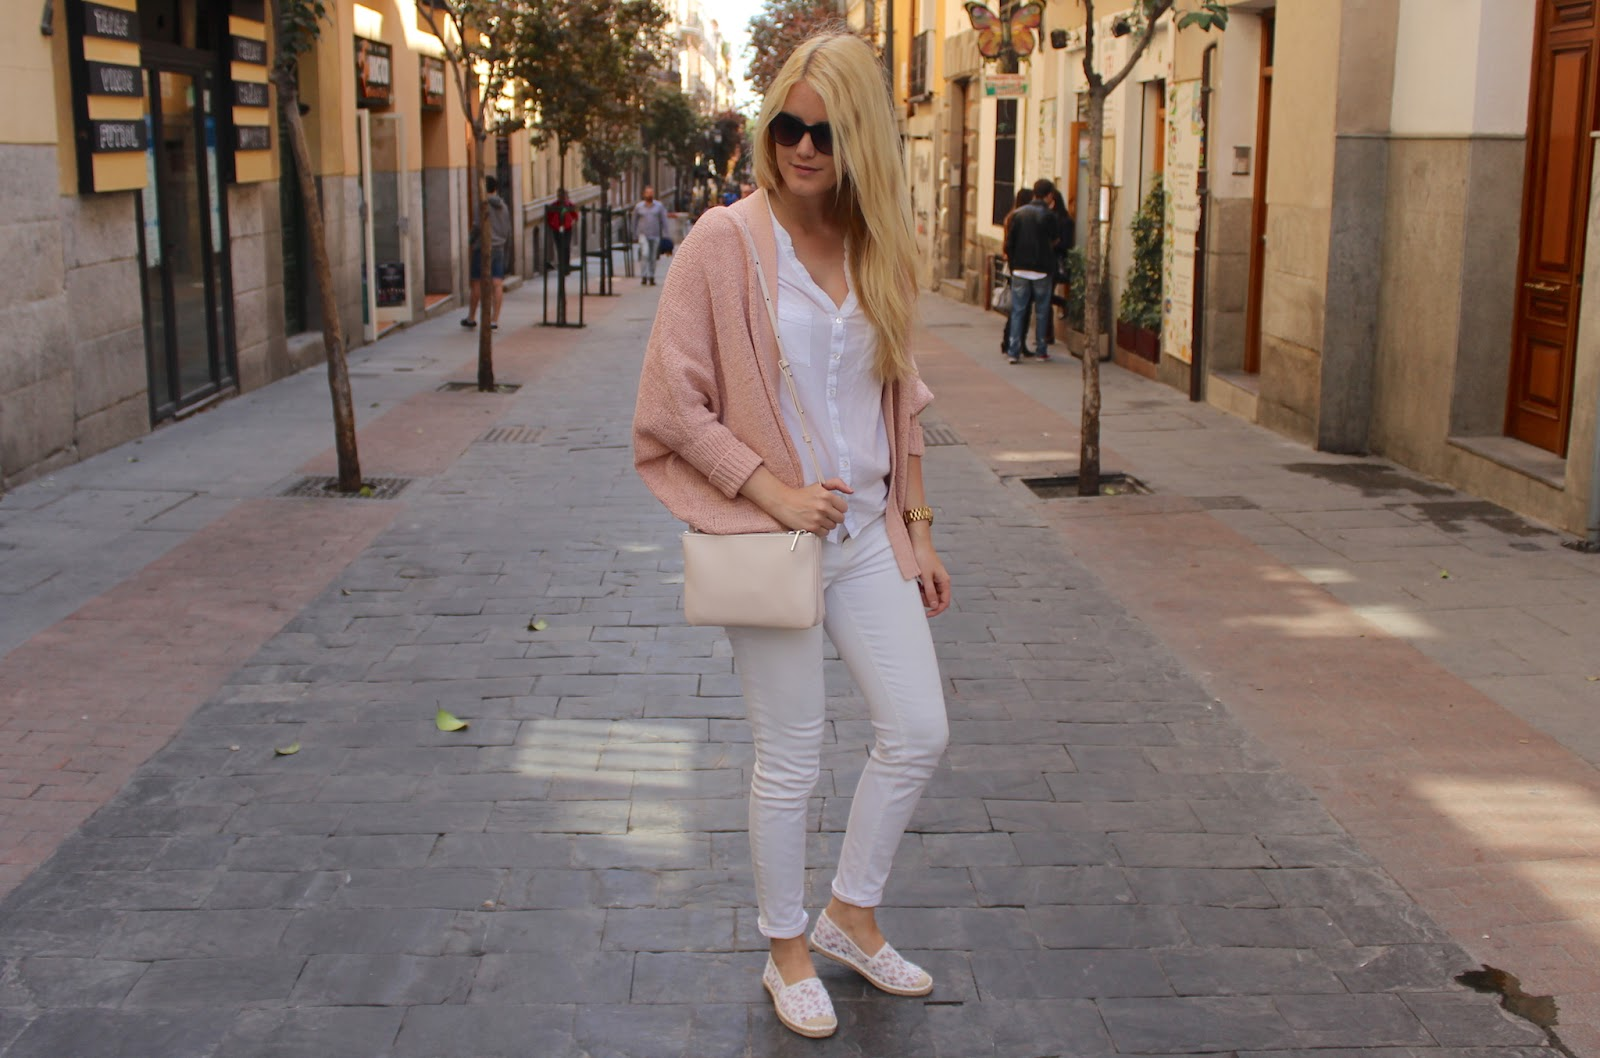 TheBlondeLion Madrid Look Barrio de las letras trio bag mango rose